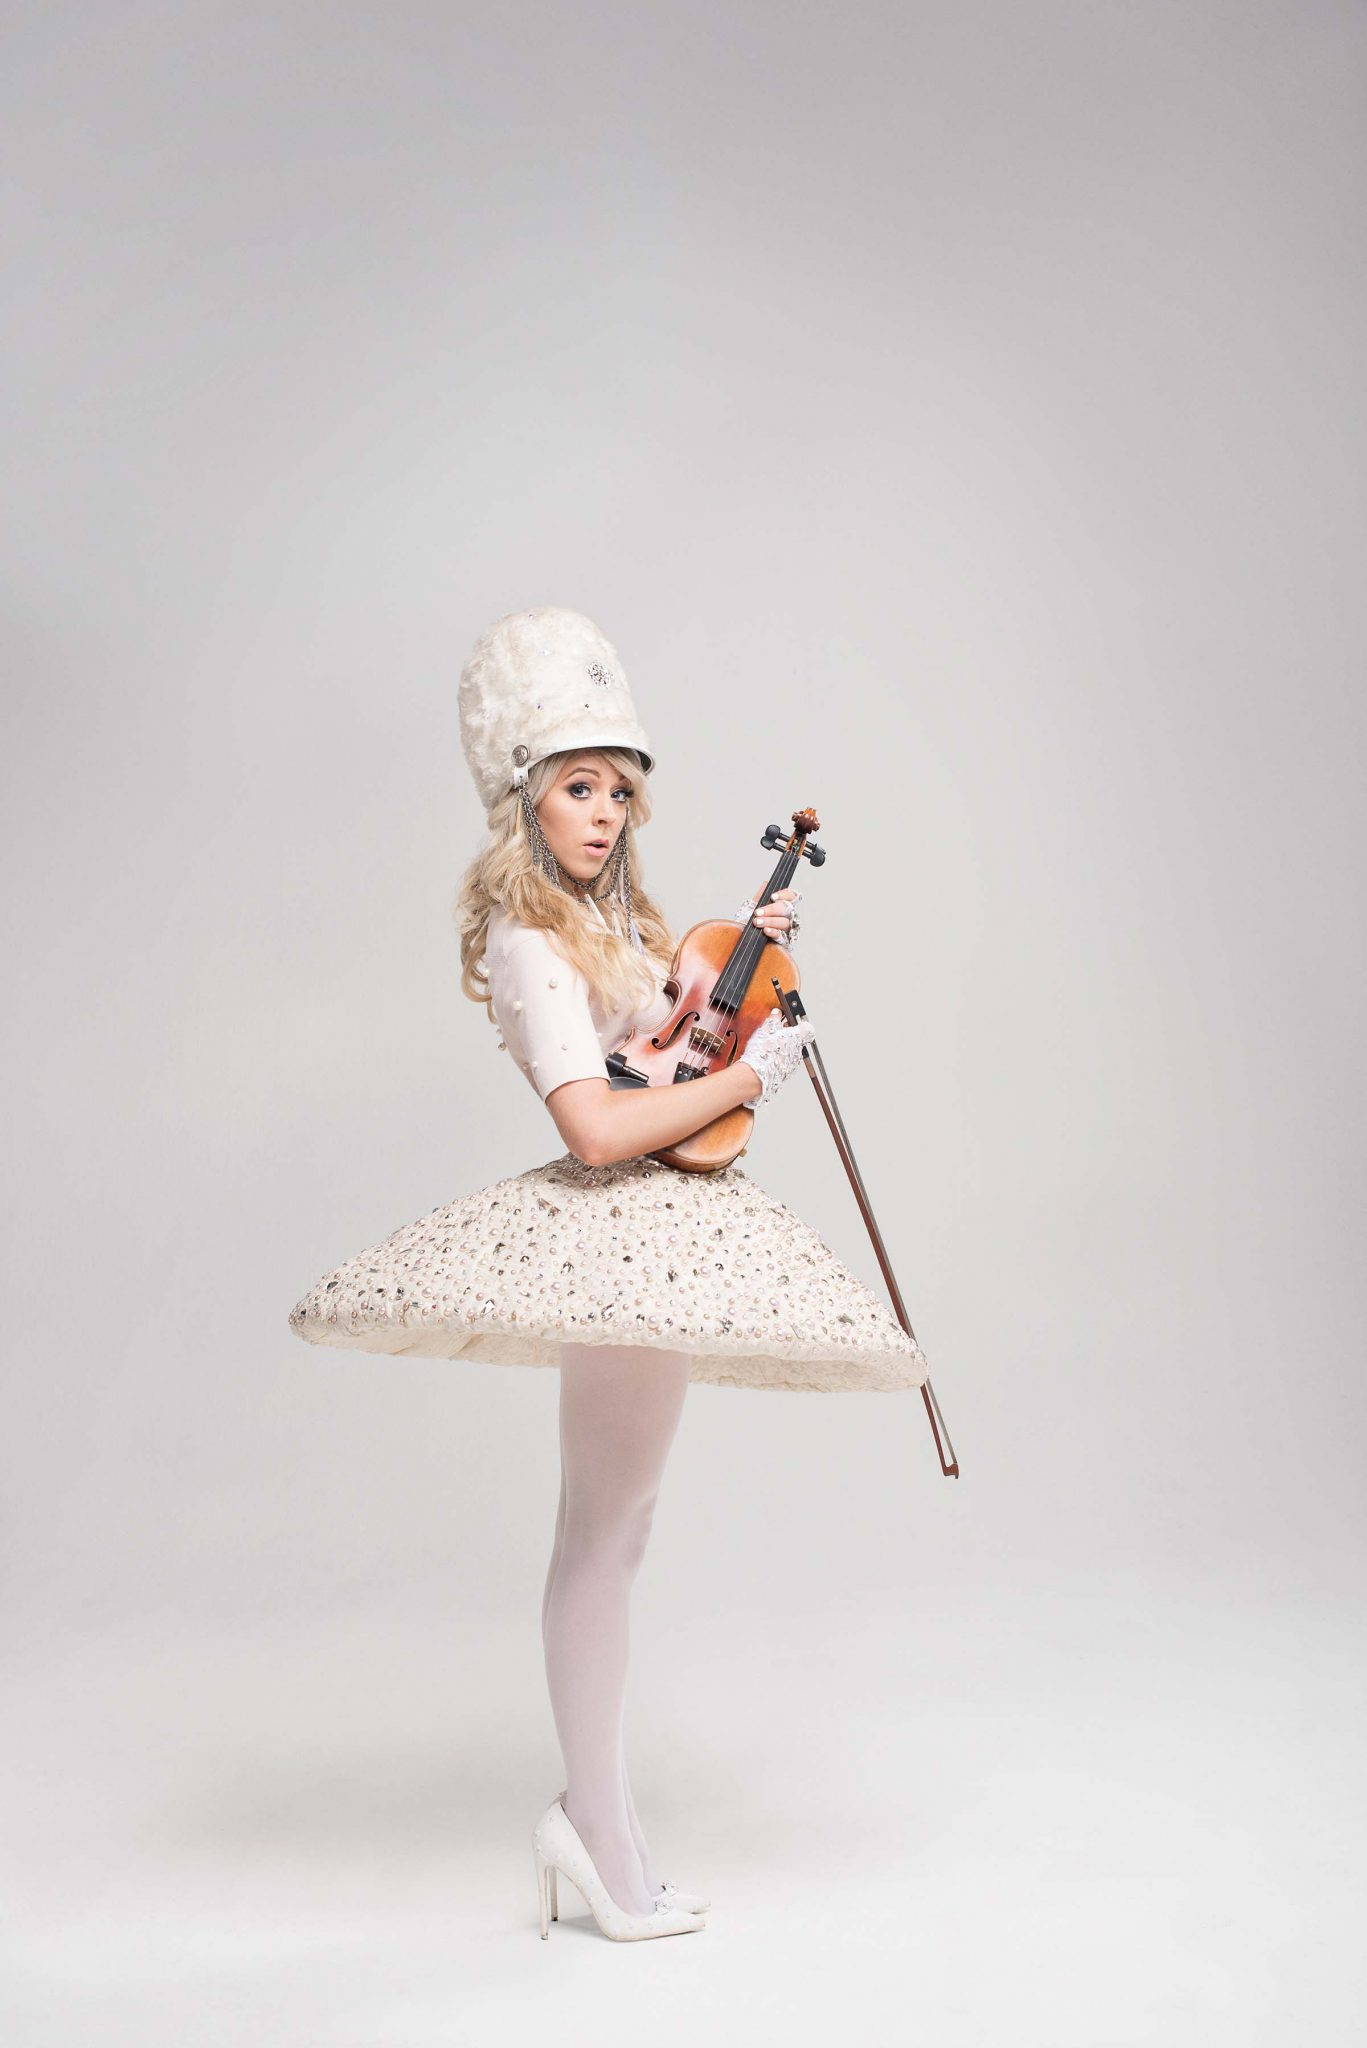 Warmer In The Winter - Lindsey Stirling